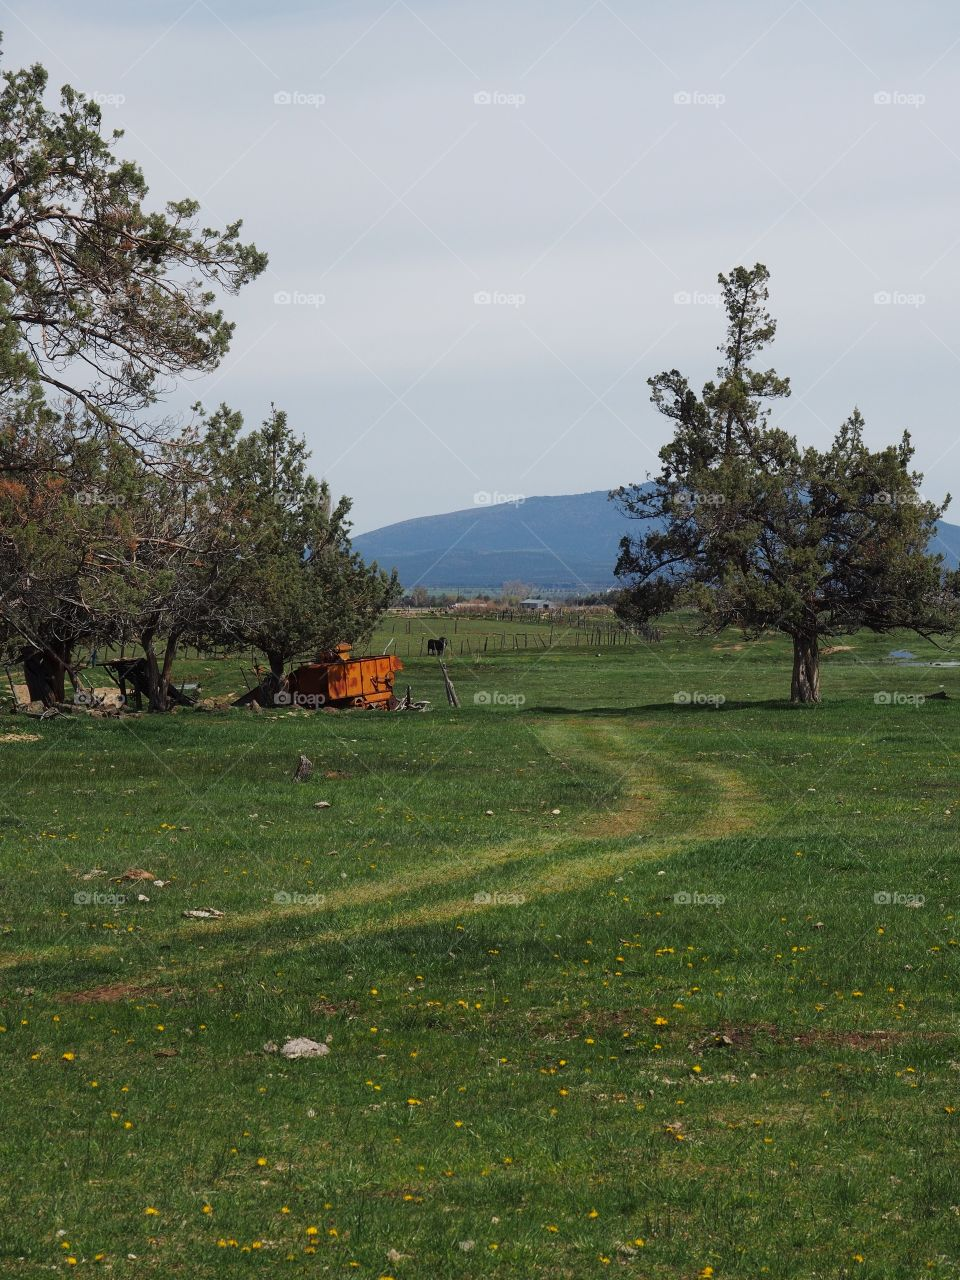 A trail through a green pasture curves through juniper trees to transport equipment and feed on a spring morning in Central Oregon.